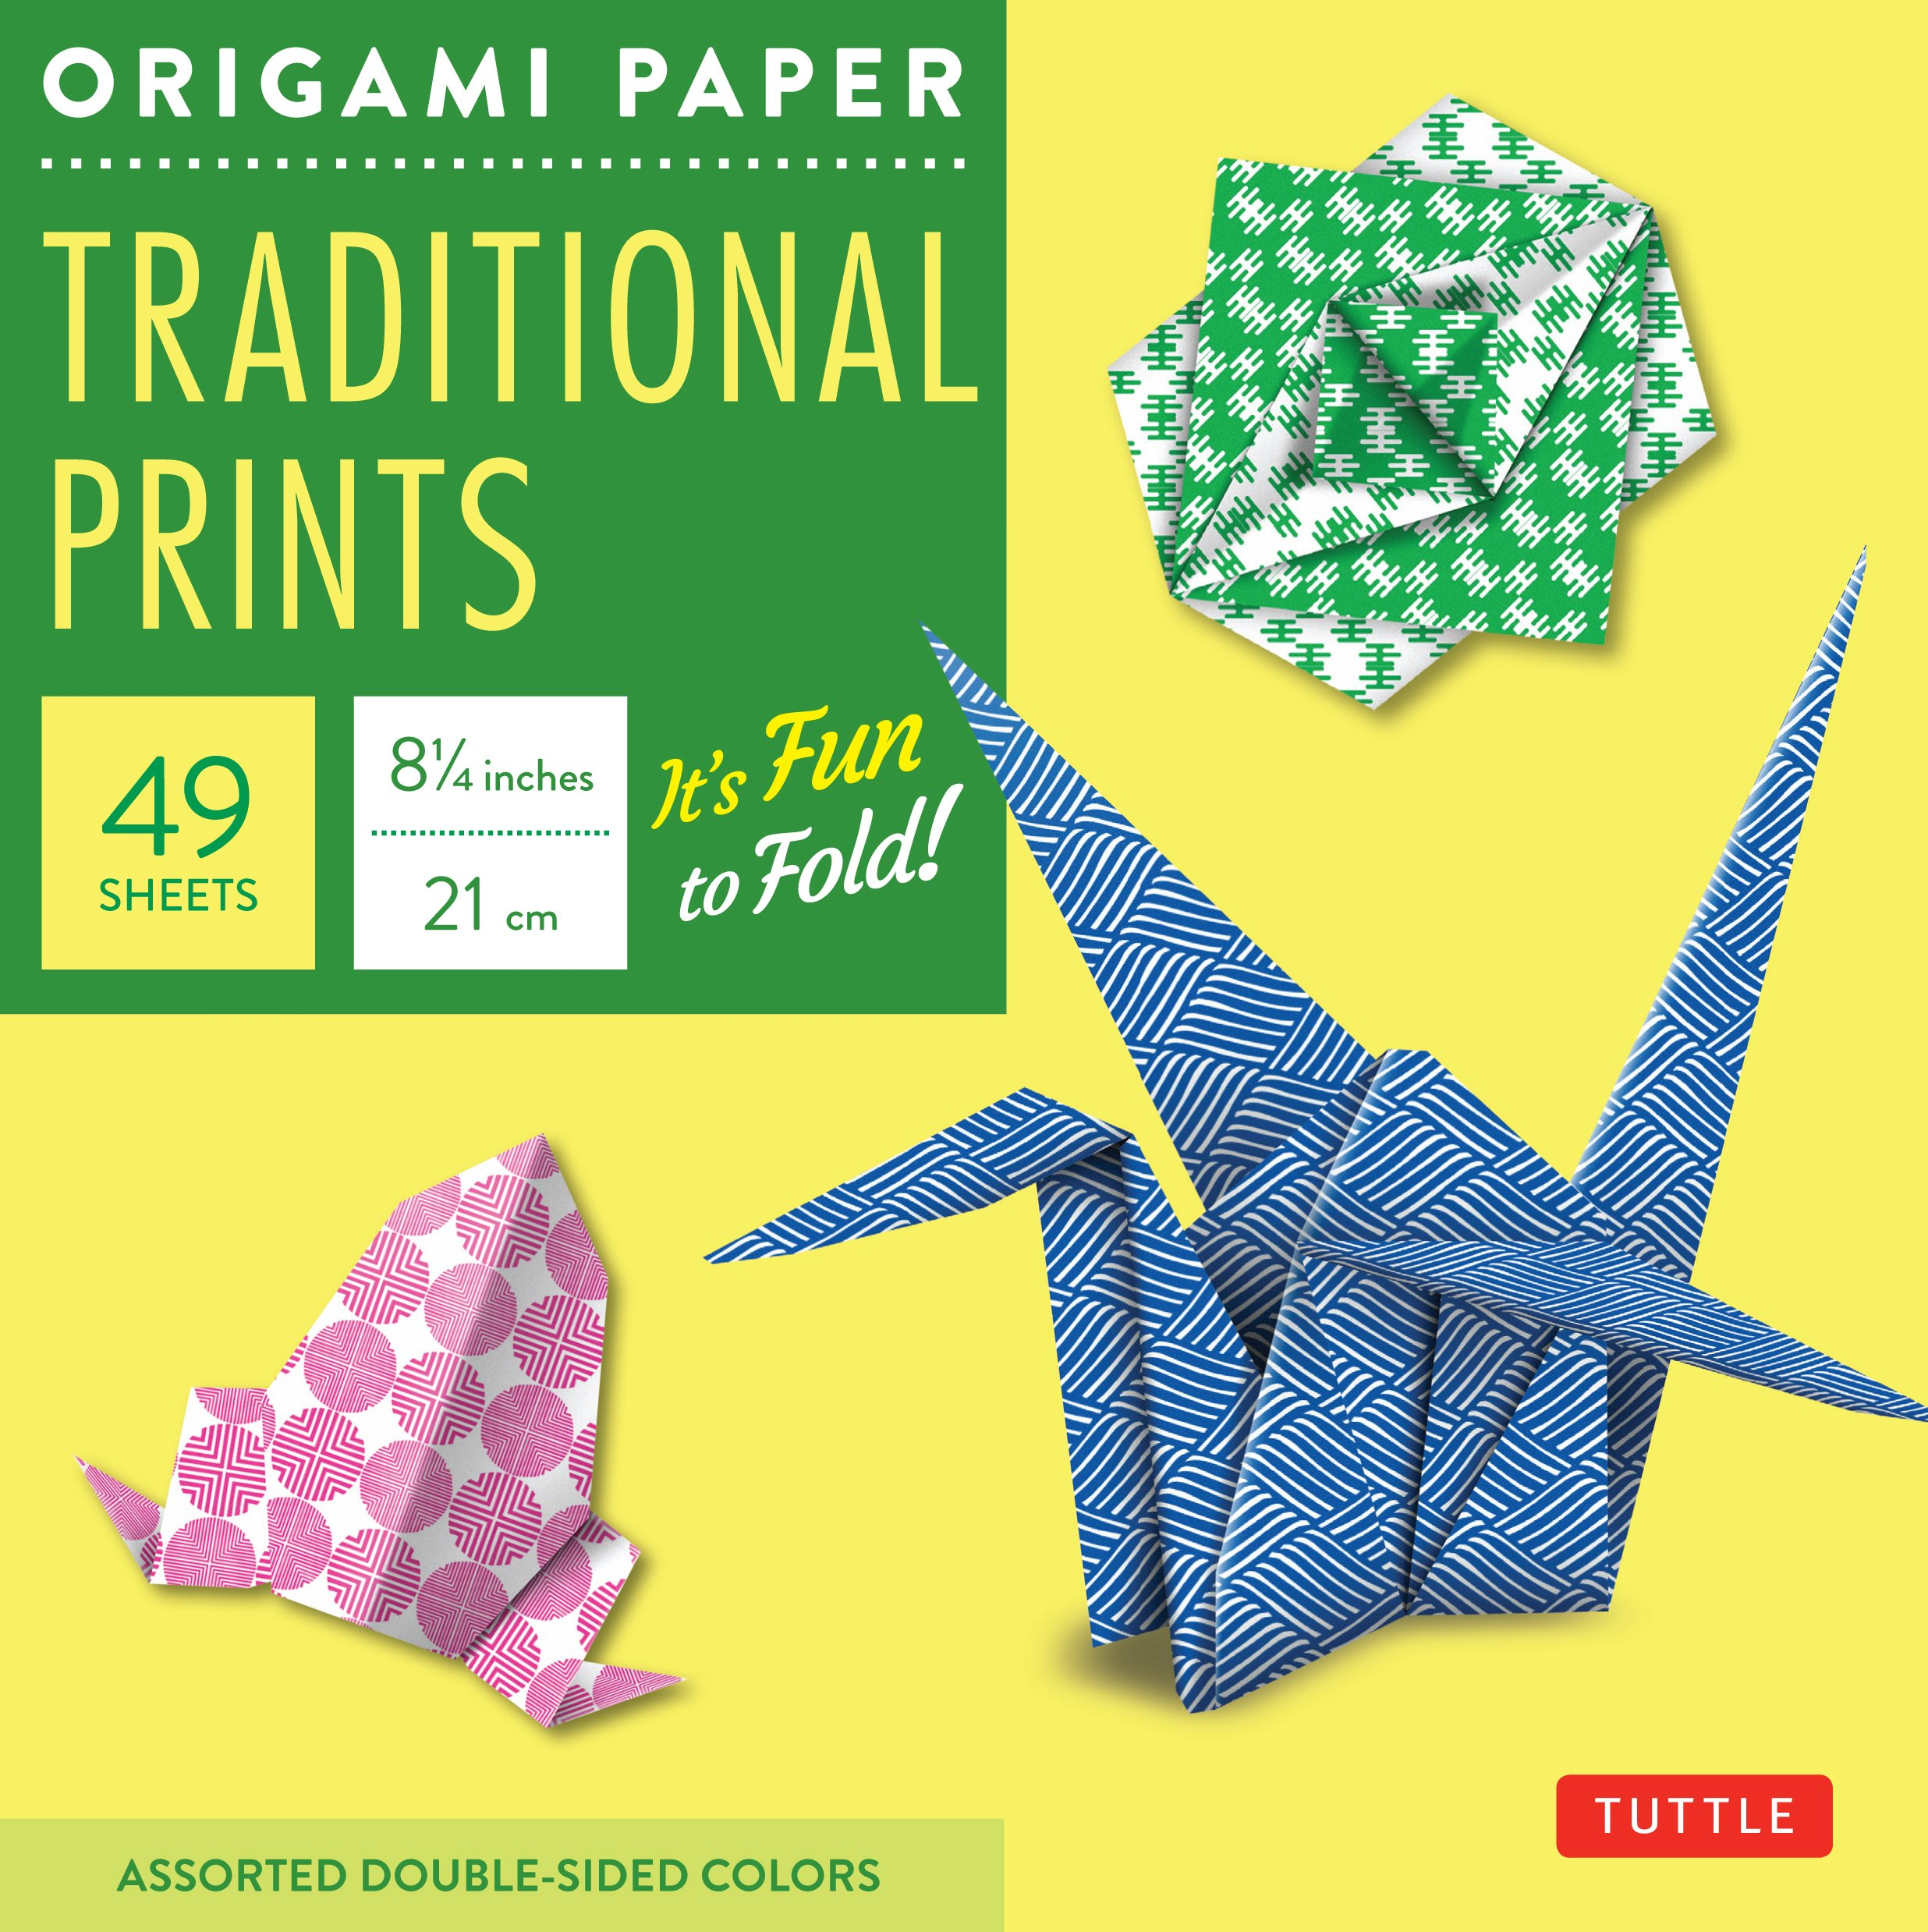 Origami Paper - Traditional Prints - 8 1/4-49 Sheets: Tuttle Origami Paper: High-Quality Large Origami Sheets Printed with 6 Different Patterns: Instructions for 6 Projects Included